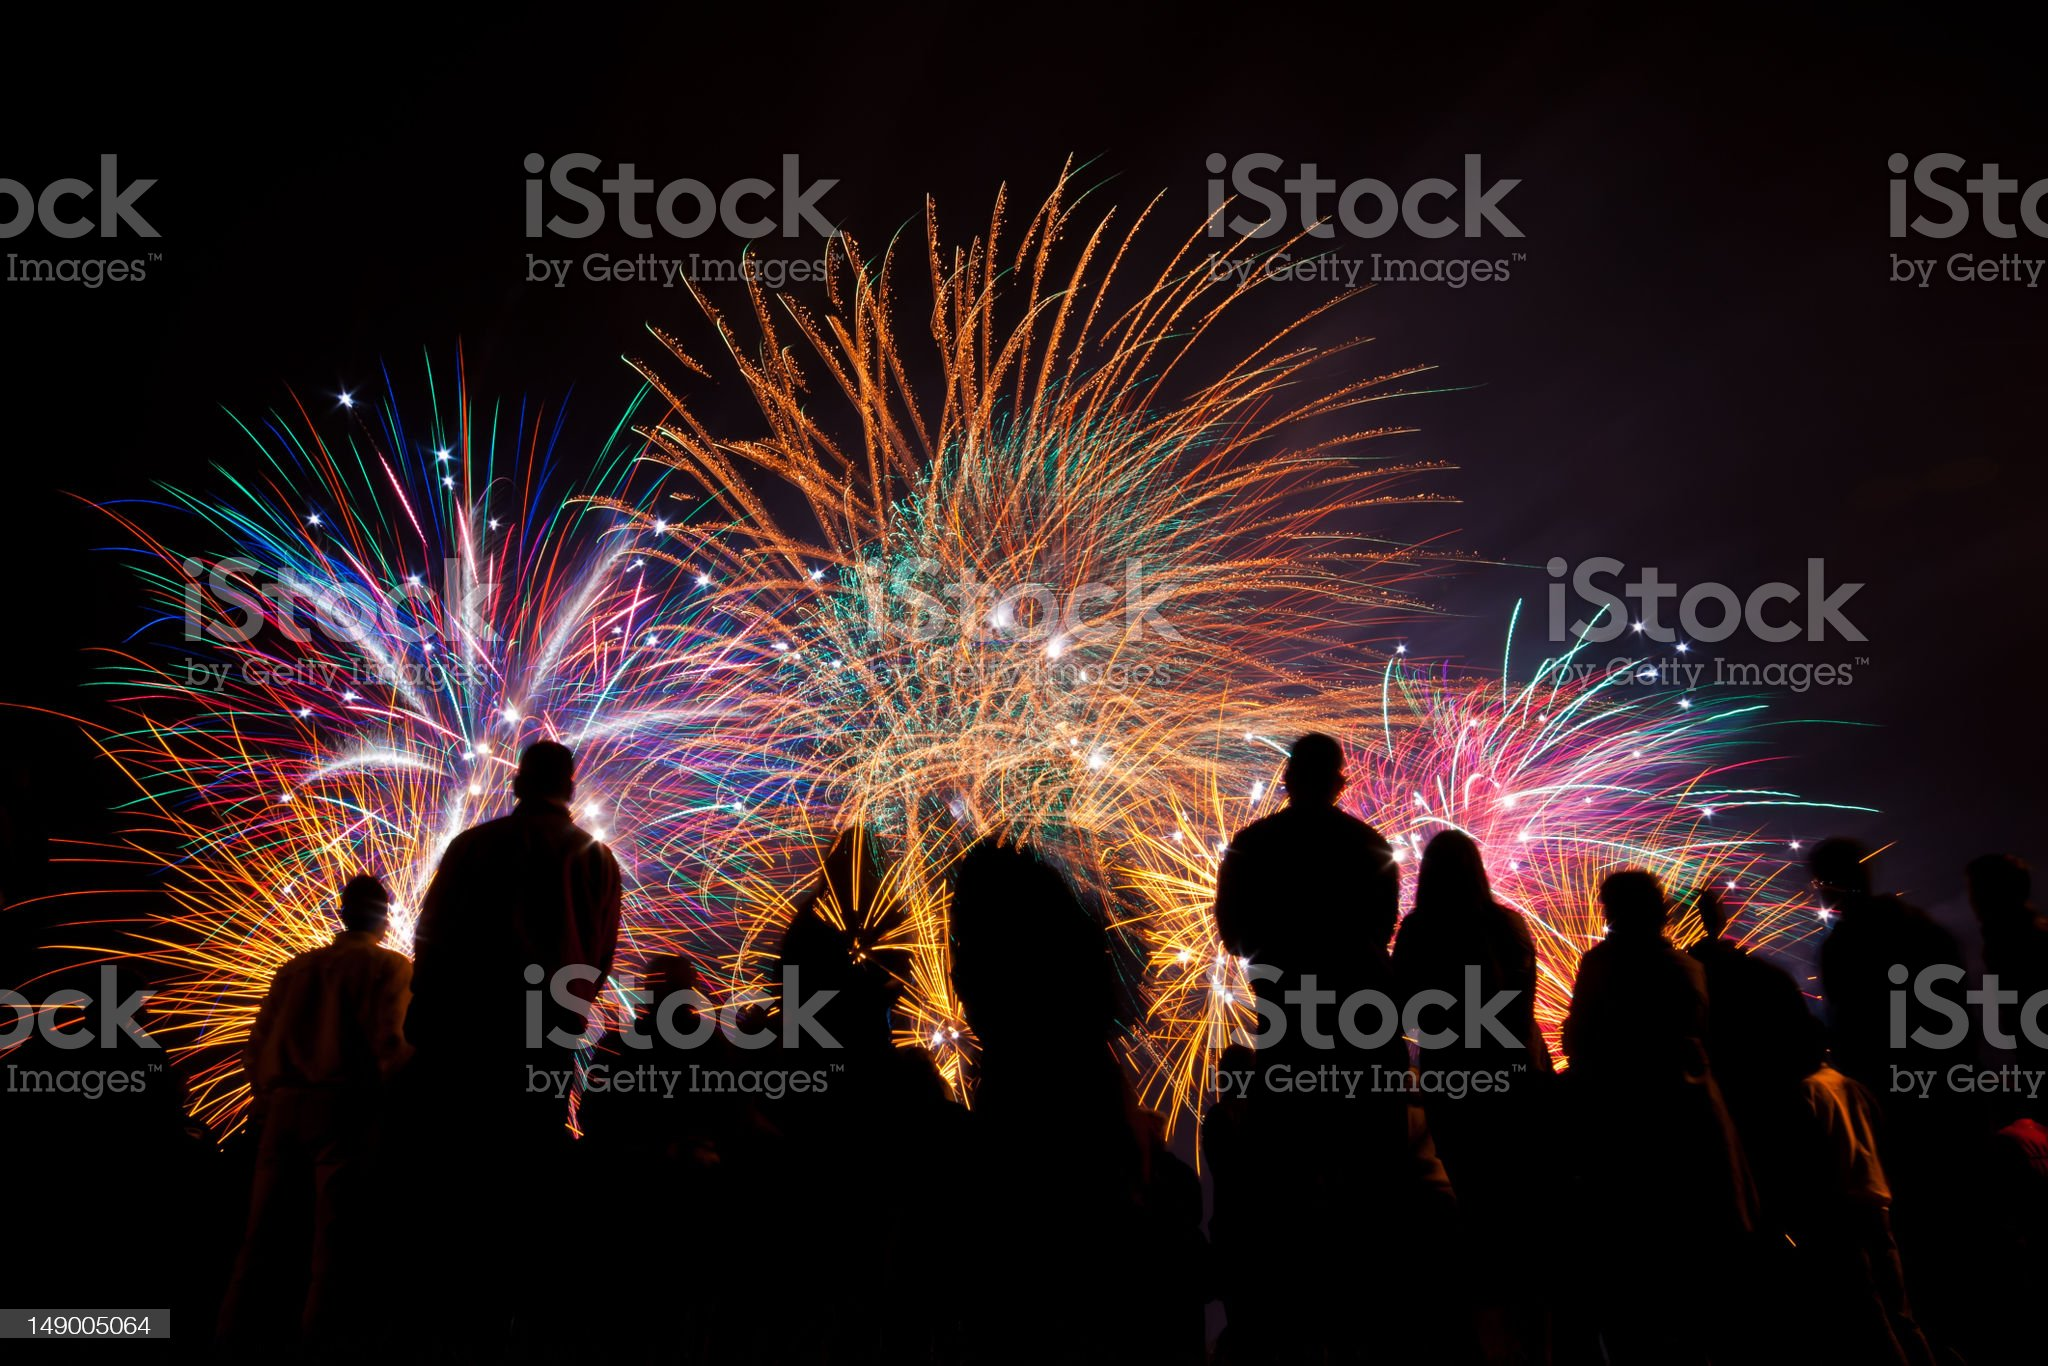 Big fireworks with silhouetted people in the foreground watching royalty-free stock photo